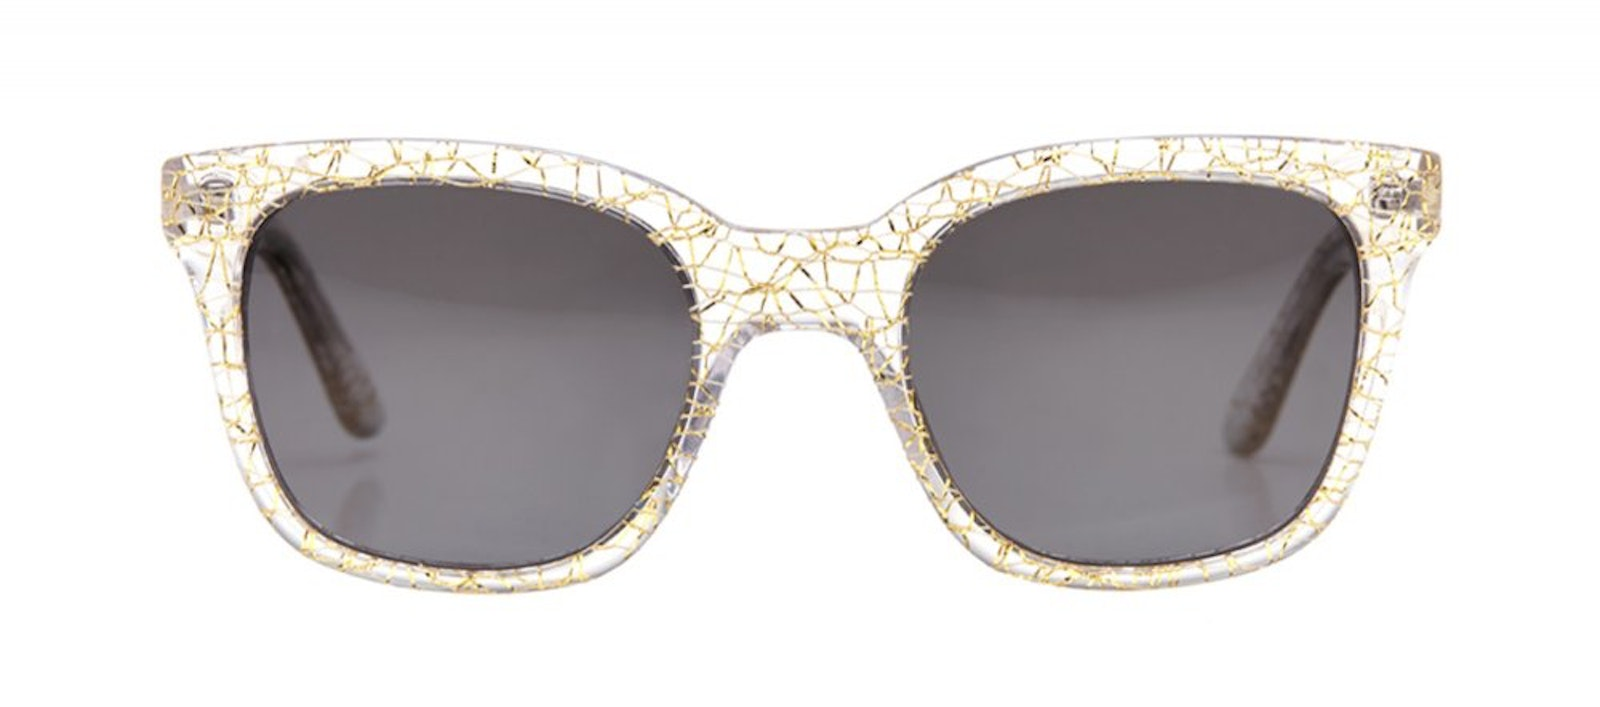 a3d6640098 Affordable Fashion Glasses Rectangle Square Sunglasses Women Jack   Norma  Champagne Front ...